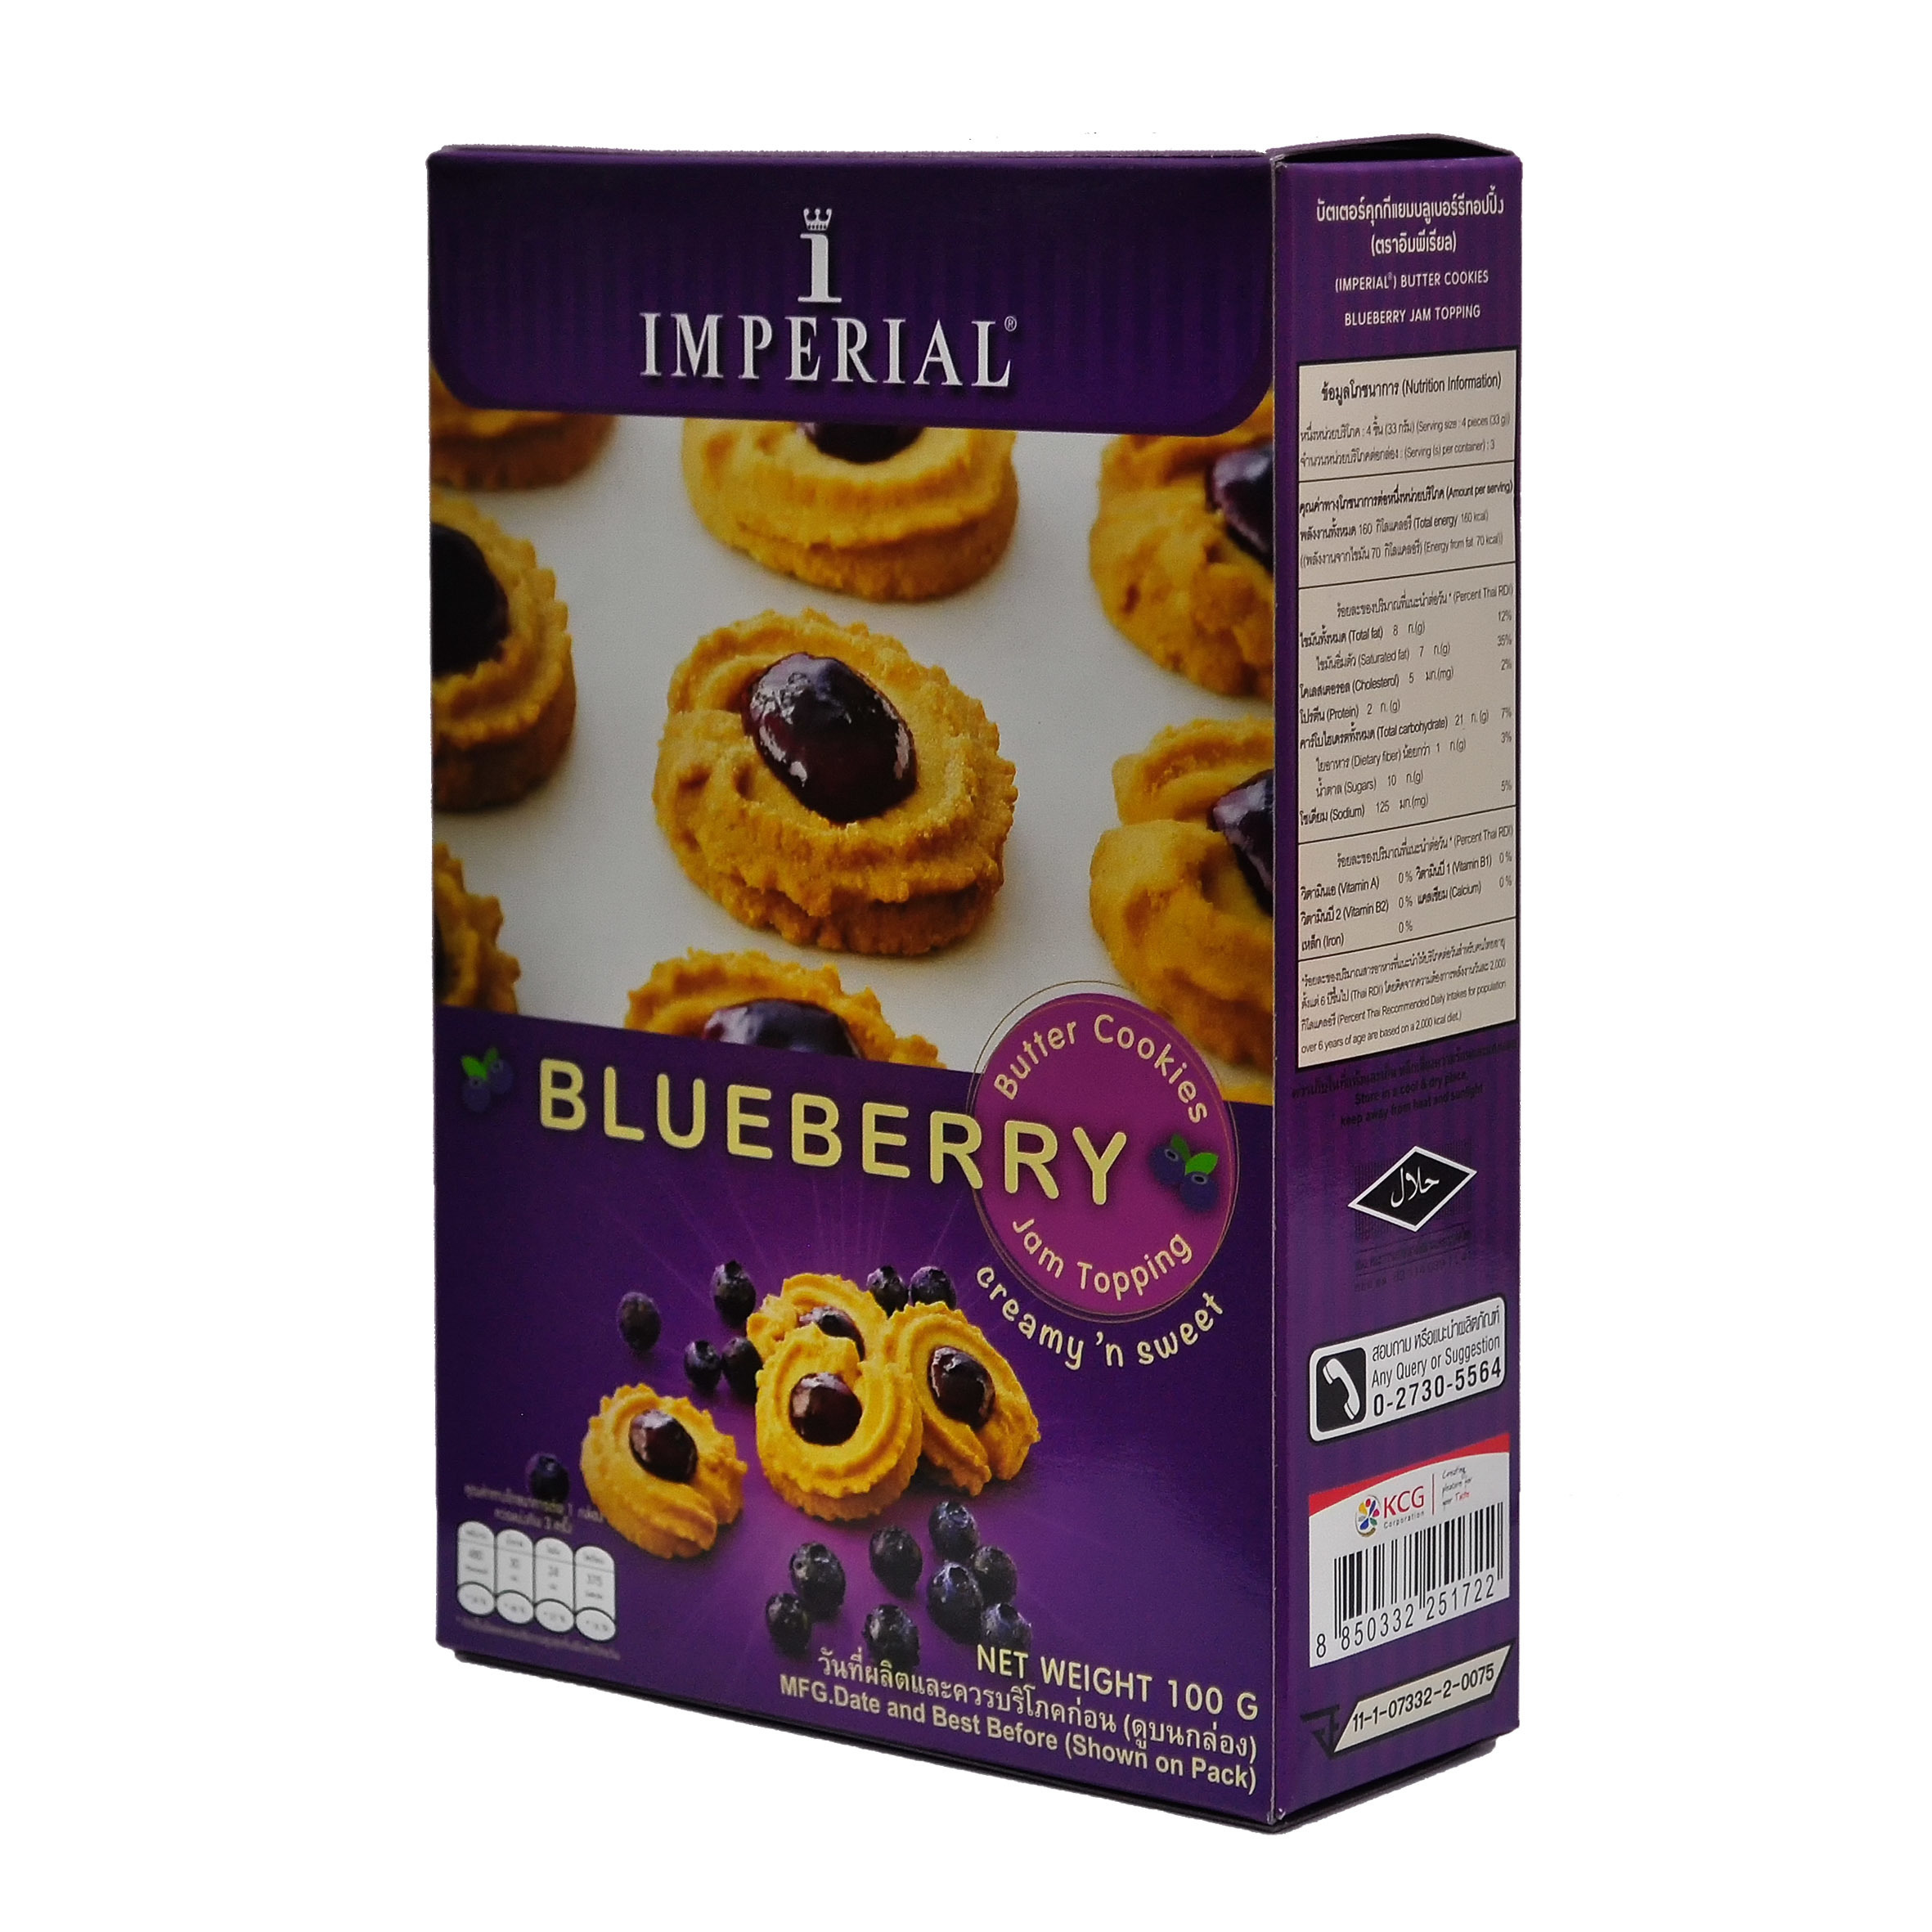 Imperial Blueberry Jam Topping Biscuit Side.jpg